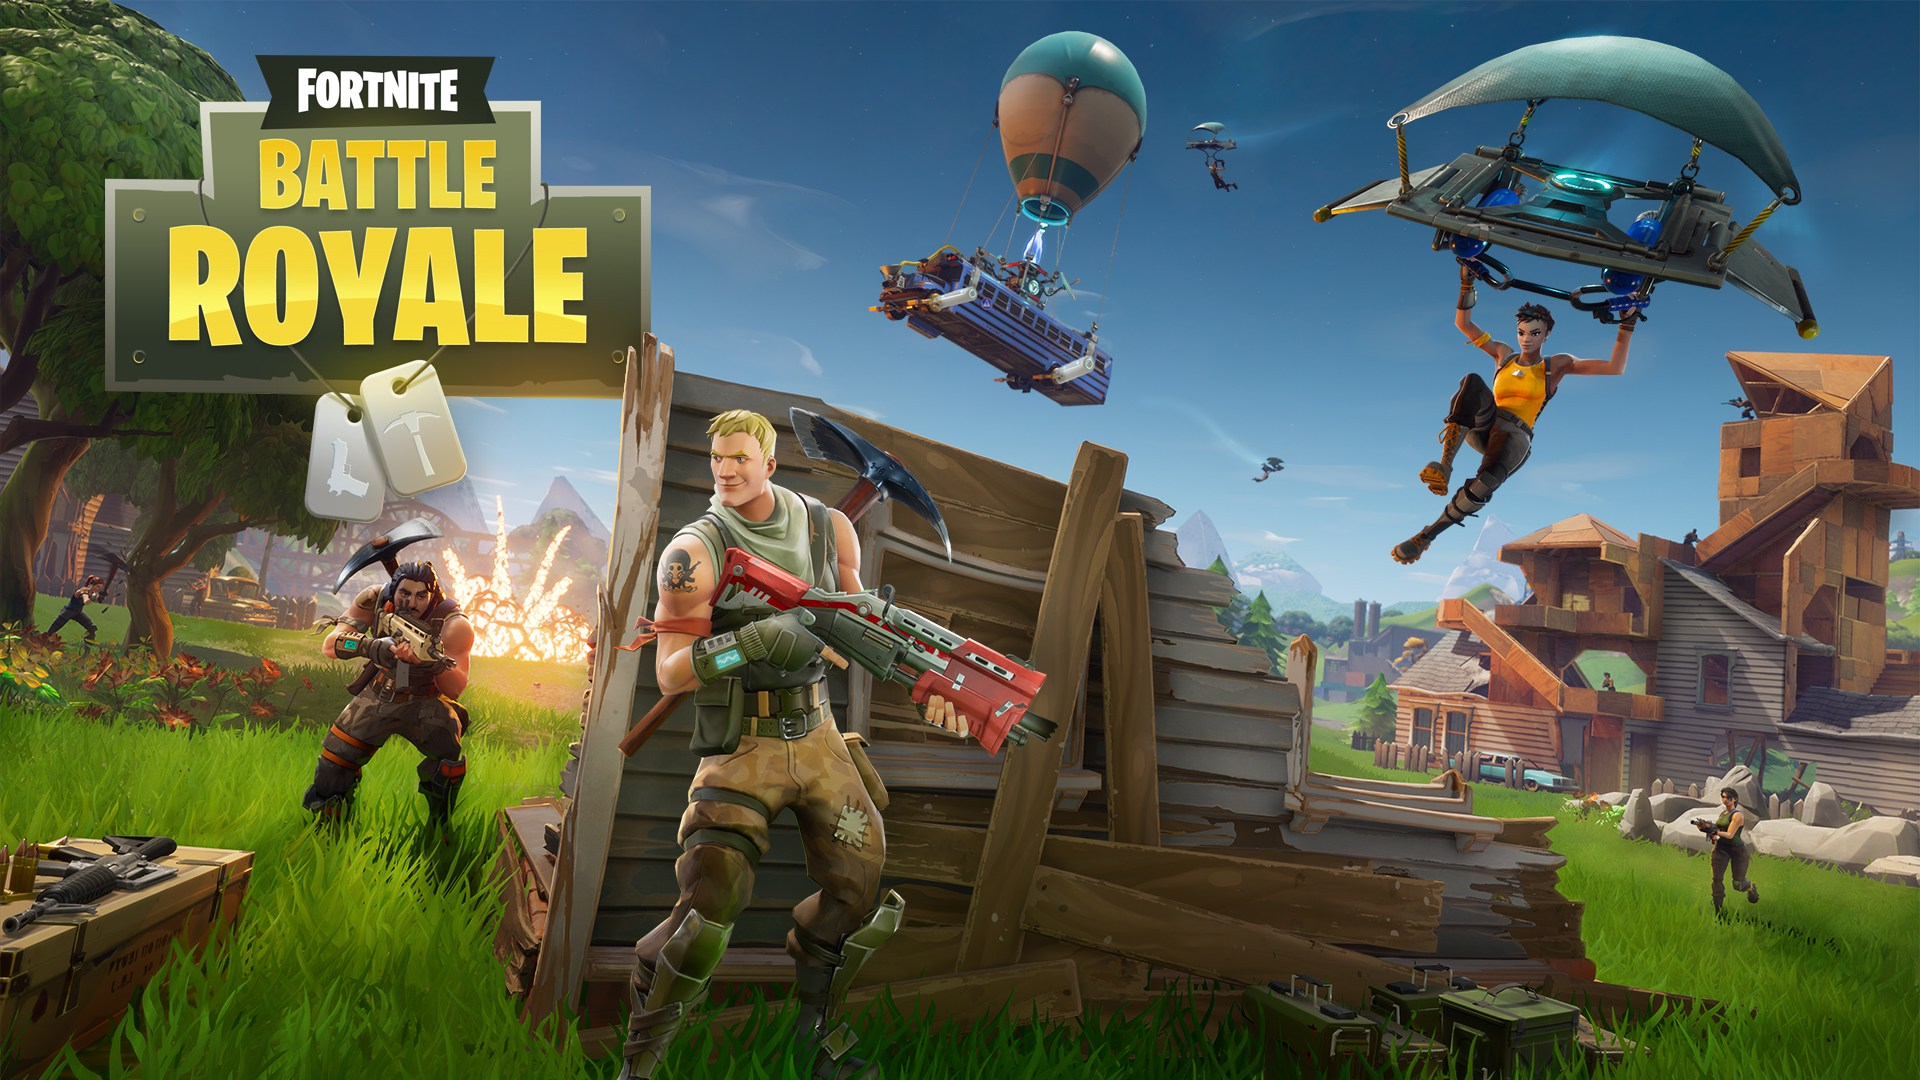 Fortnite predvodi rast digitalne zarade u industriji